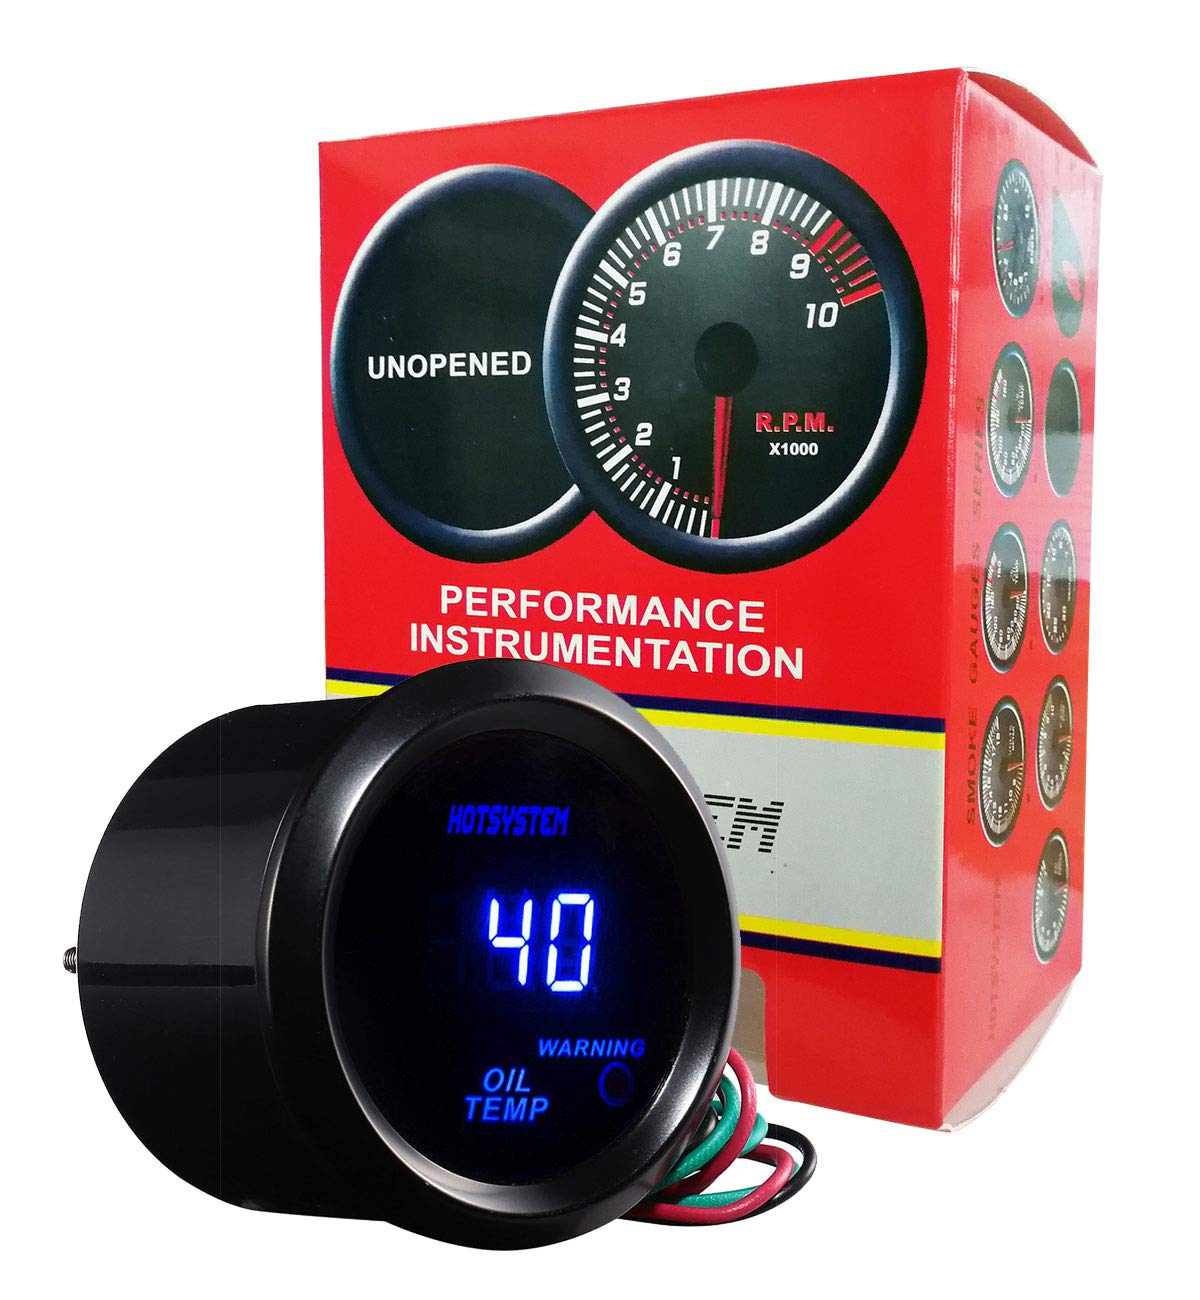 HOTSYSTEM Universal Oil Temperature Gauge Temp Meter Blue Digital LED DC12V 2inches 52mm for Car Automotive(Celsius) by HOTSYSTEM